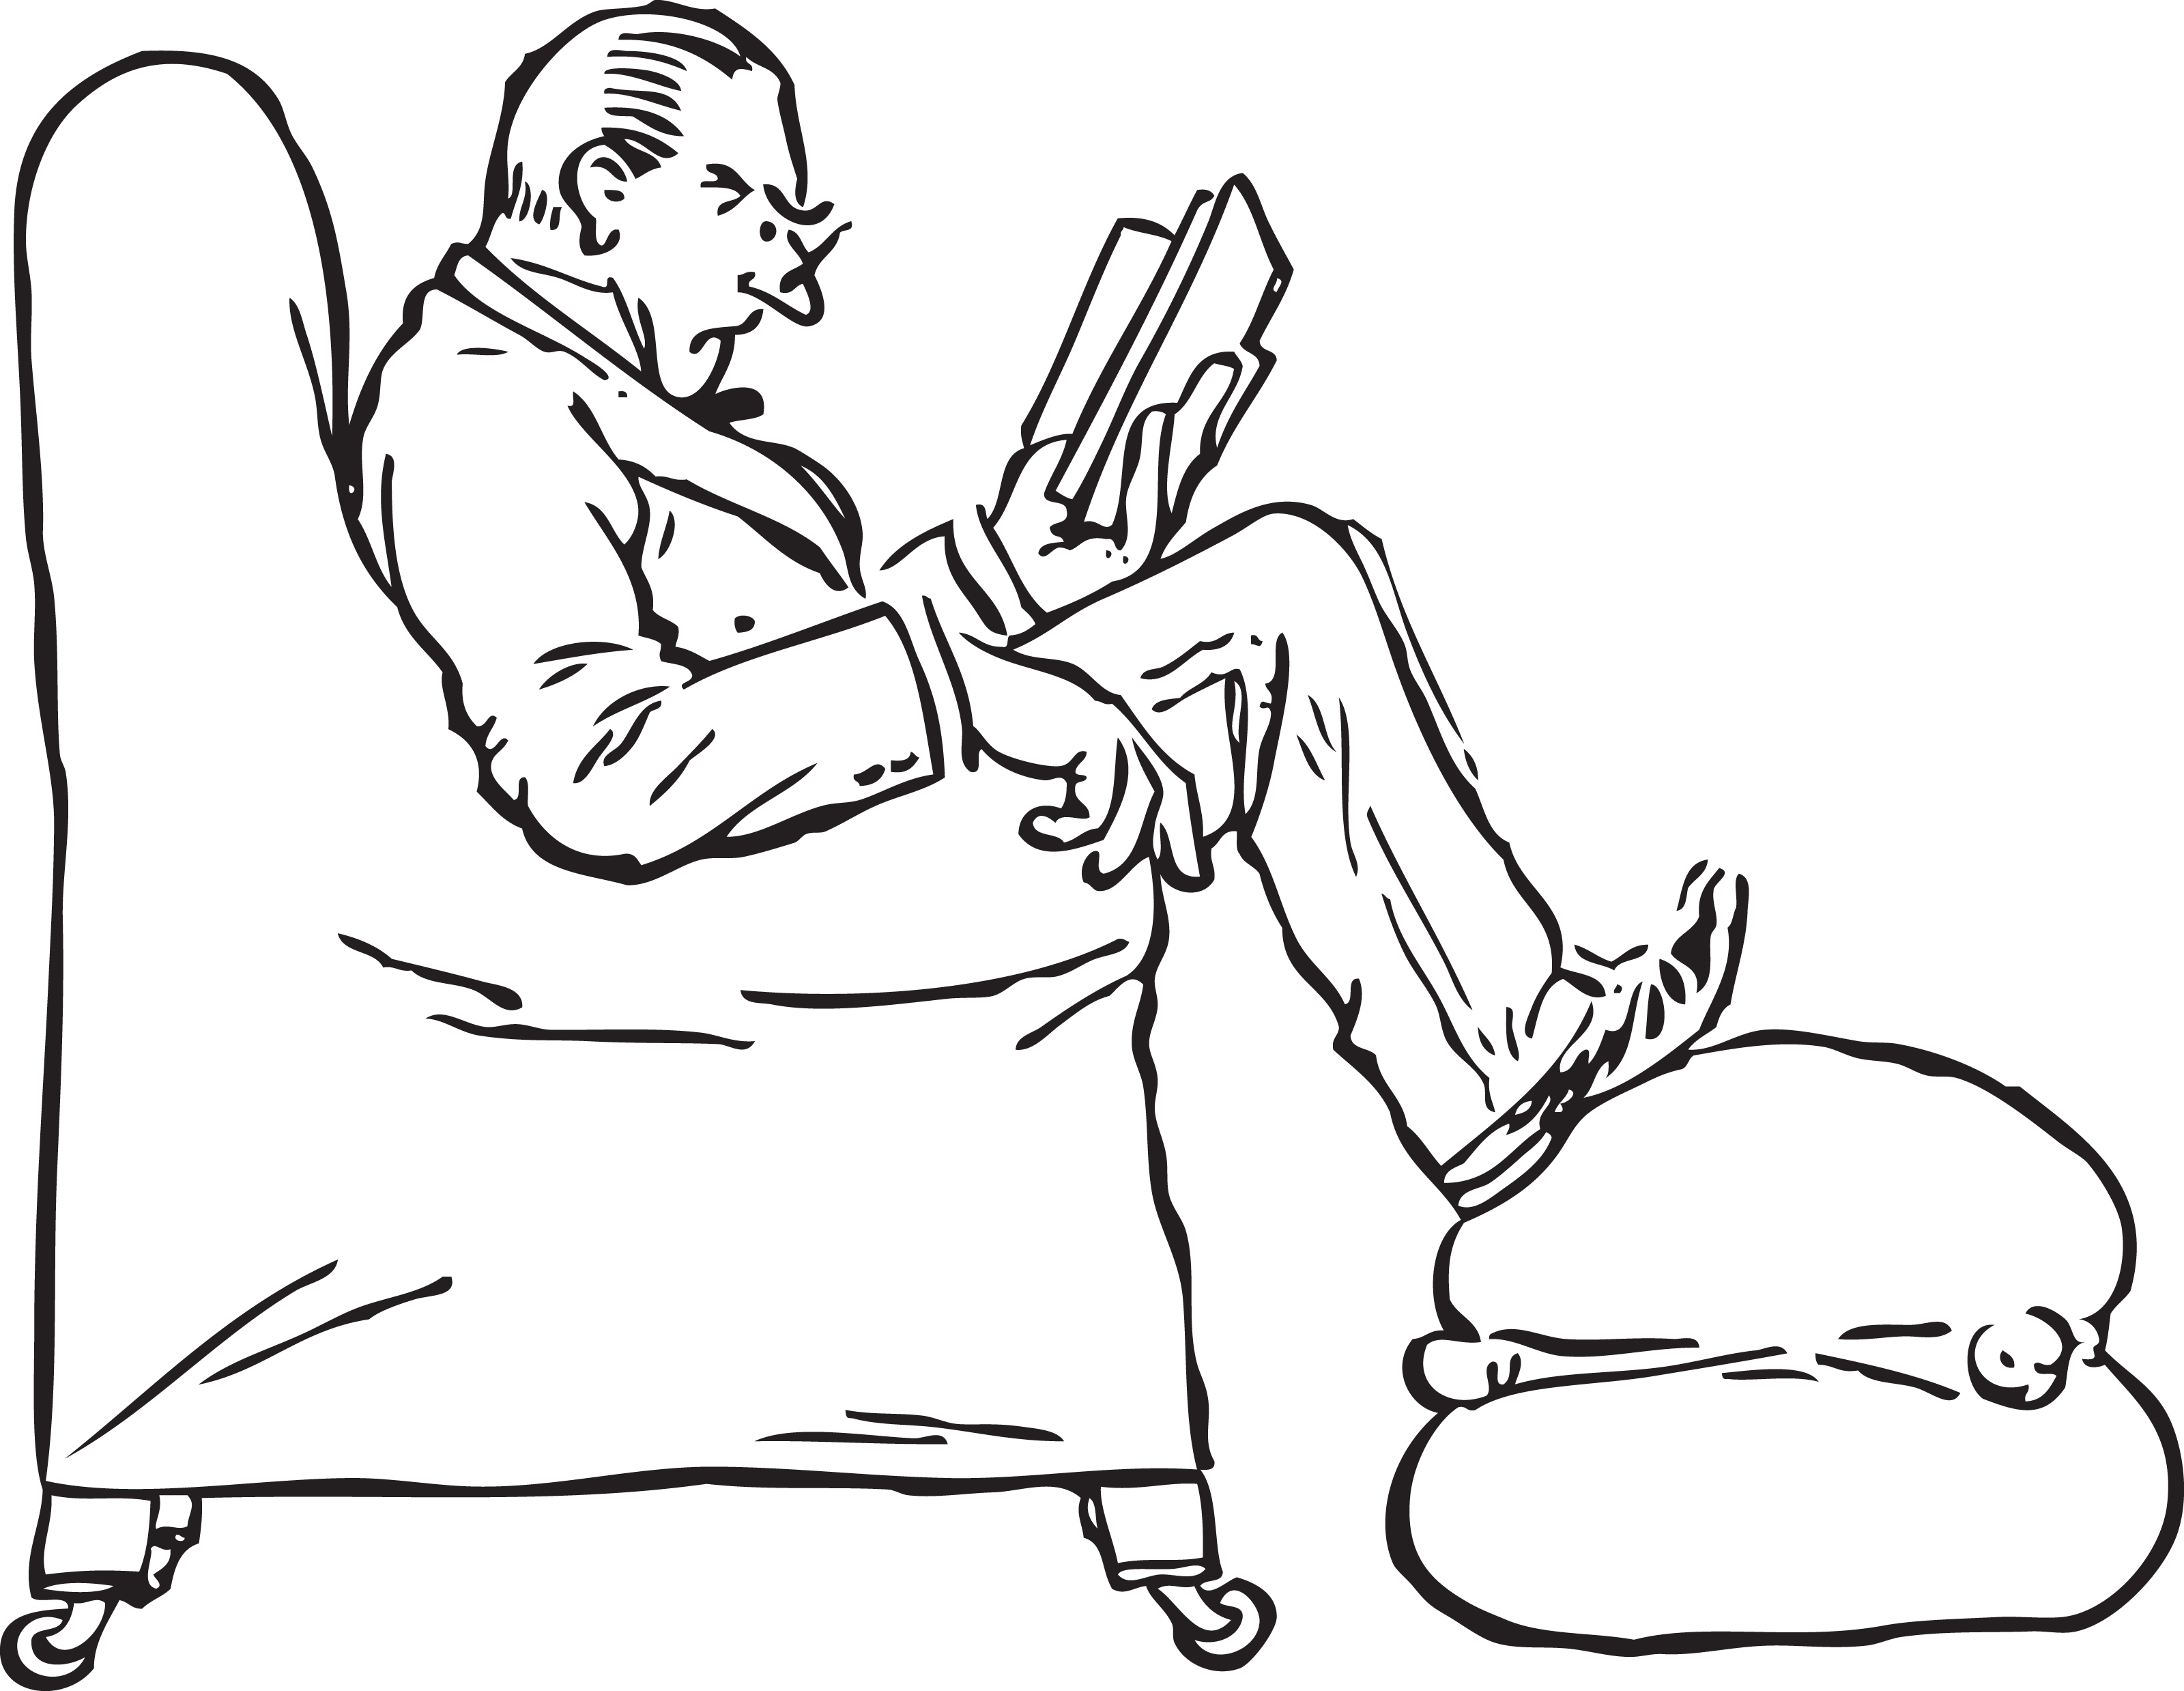 Free Retro Clipart Illustration Of Man Reading Book While